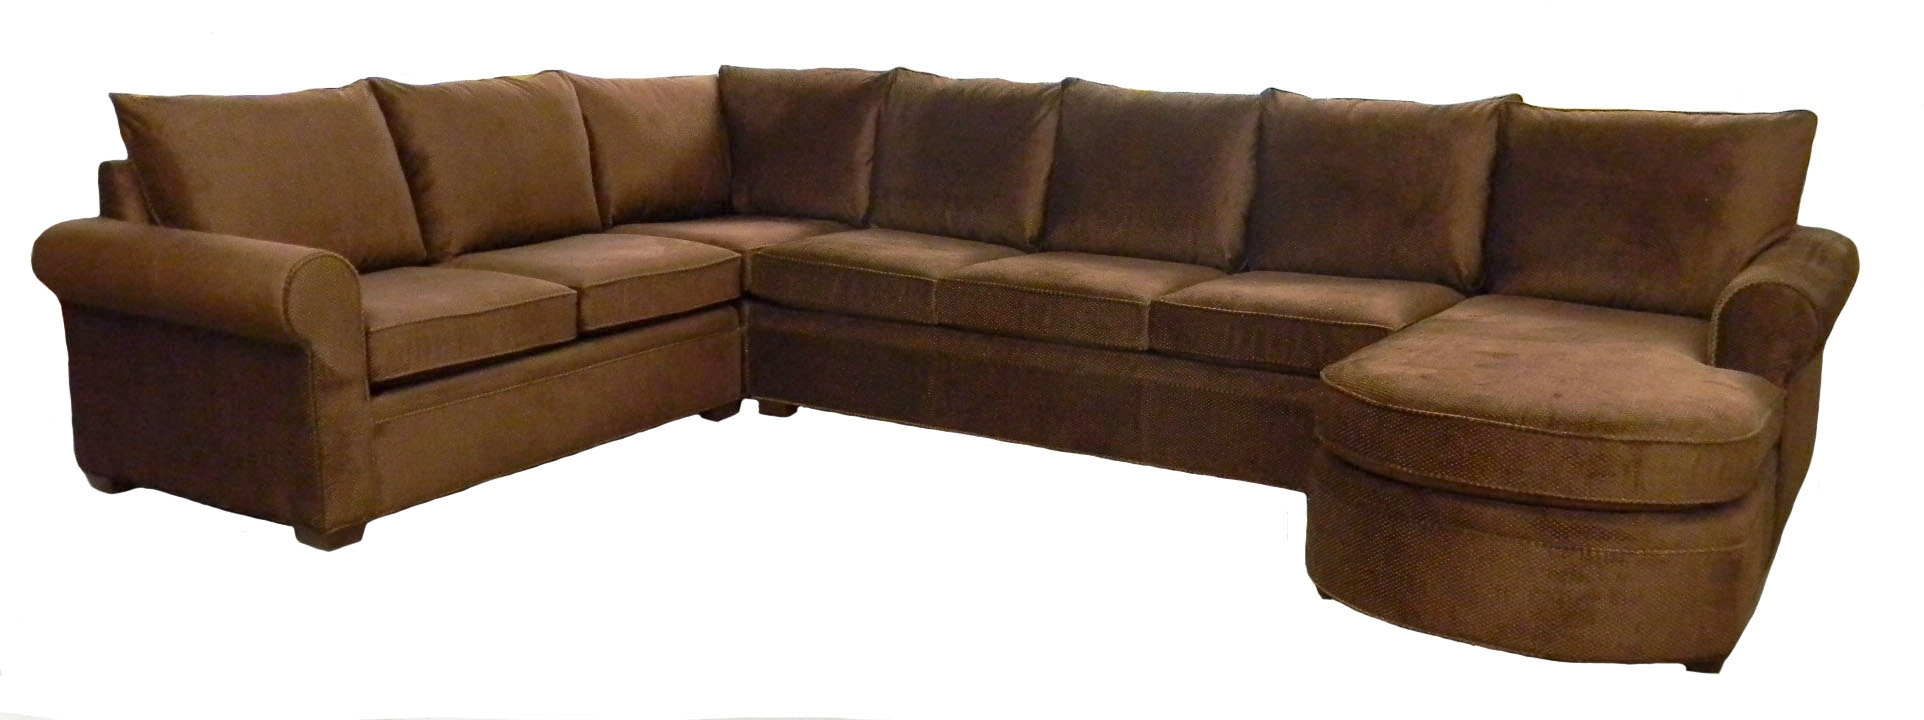 Photos Examples Custom Sectional Sofas Carolina Chair Furniture Pertaining To 7 Seat Sectional Sofa (View 3 of 12)